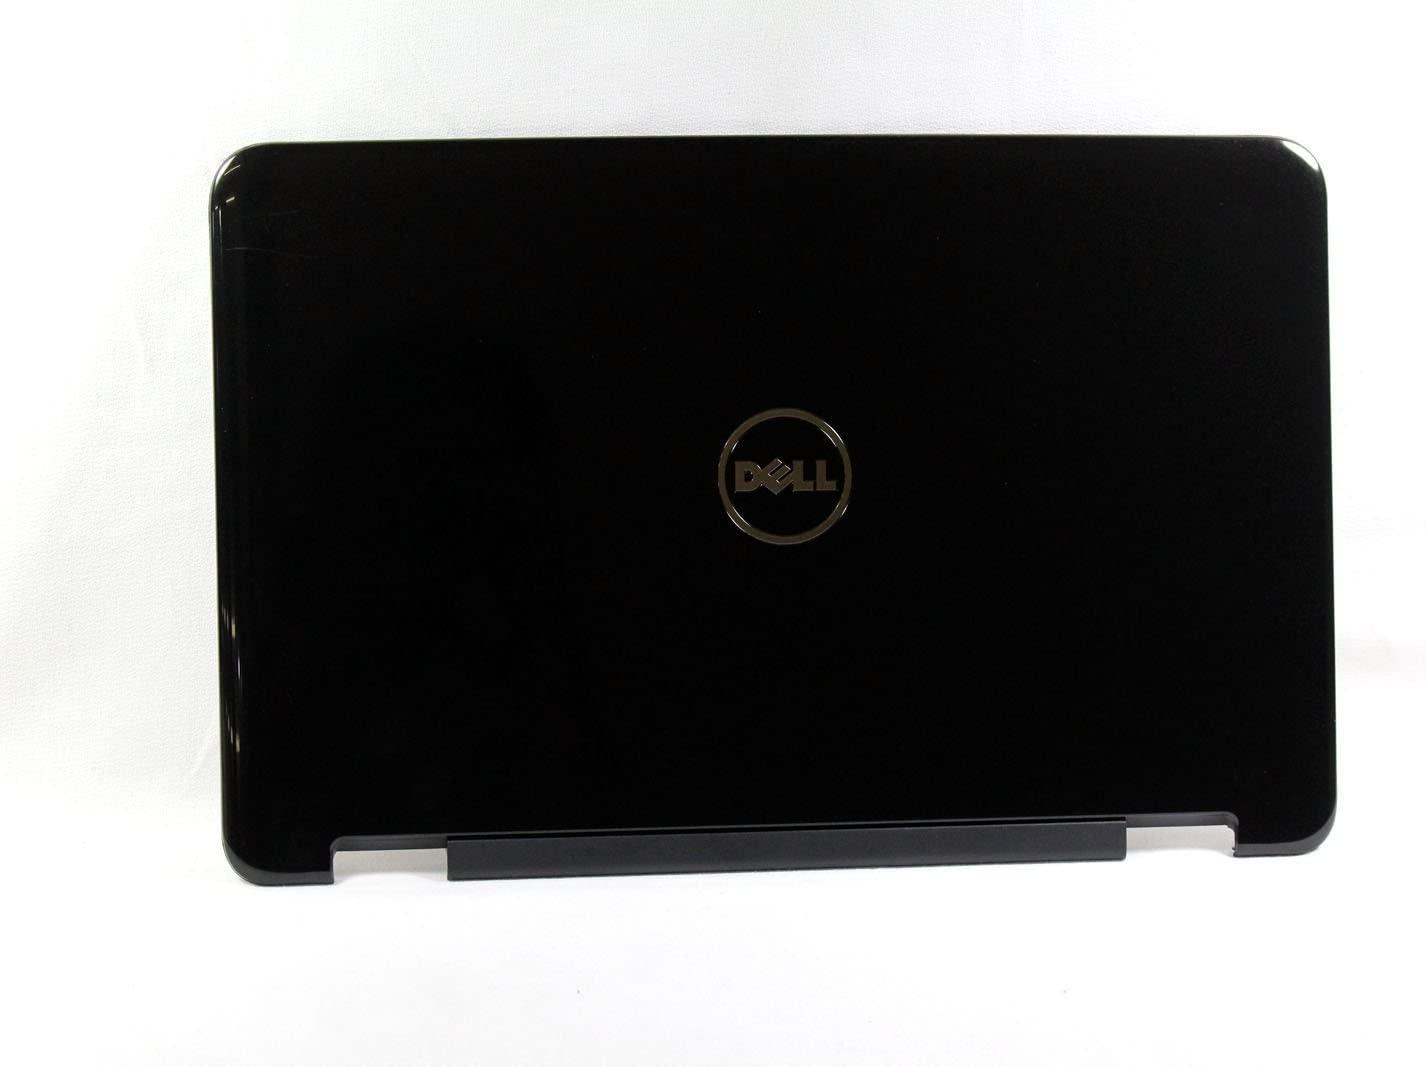 Dell LED T3X9F Black LCD Back Cover Inspiron N5050 N5040 Top Lid